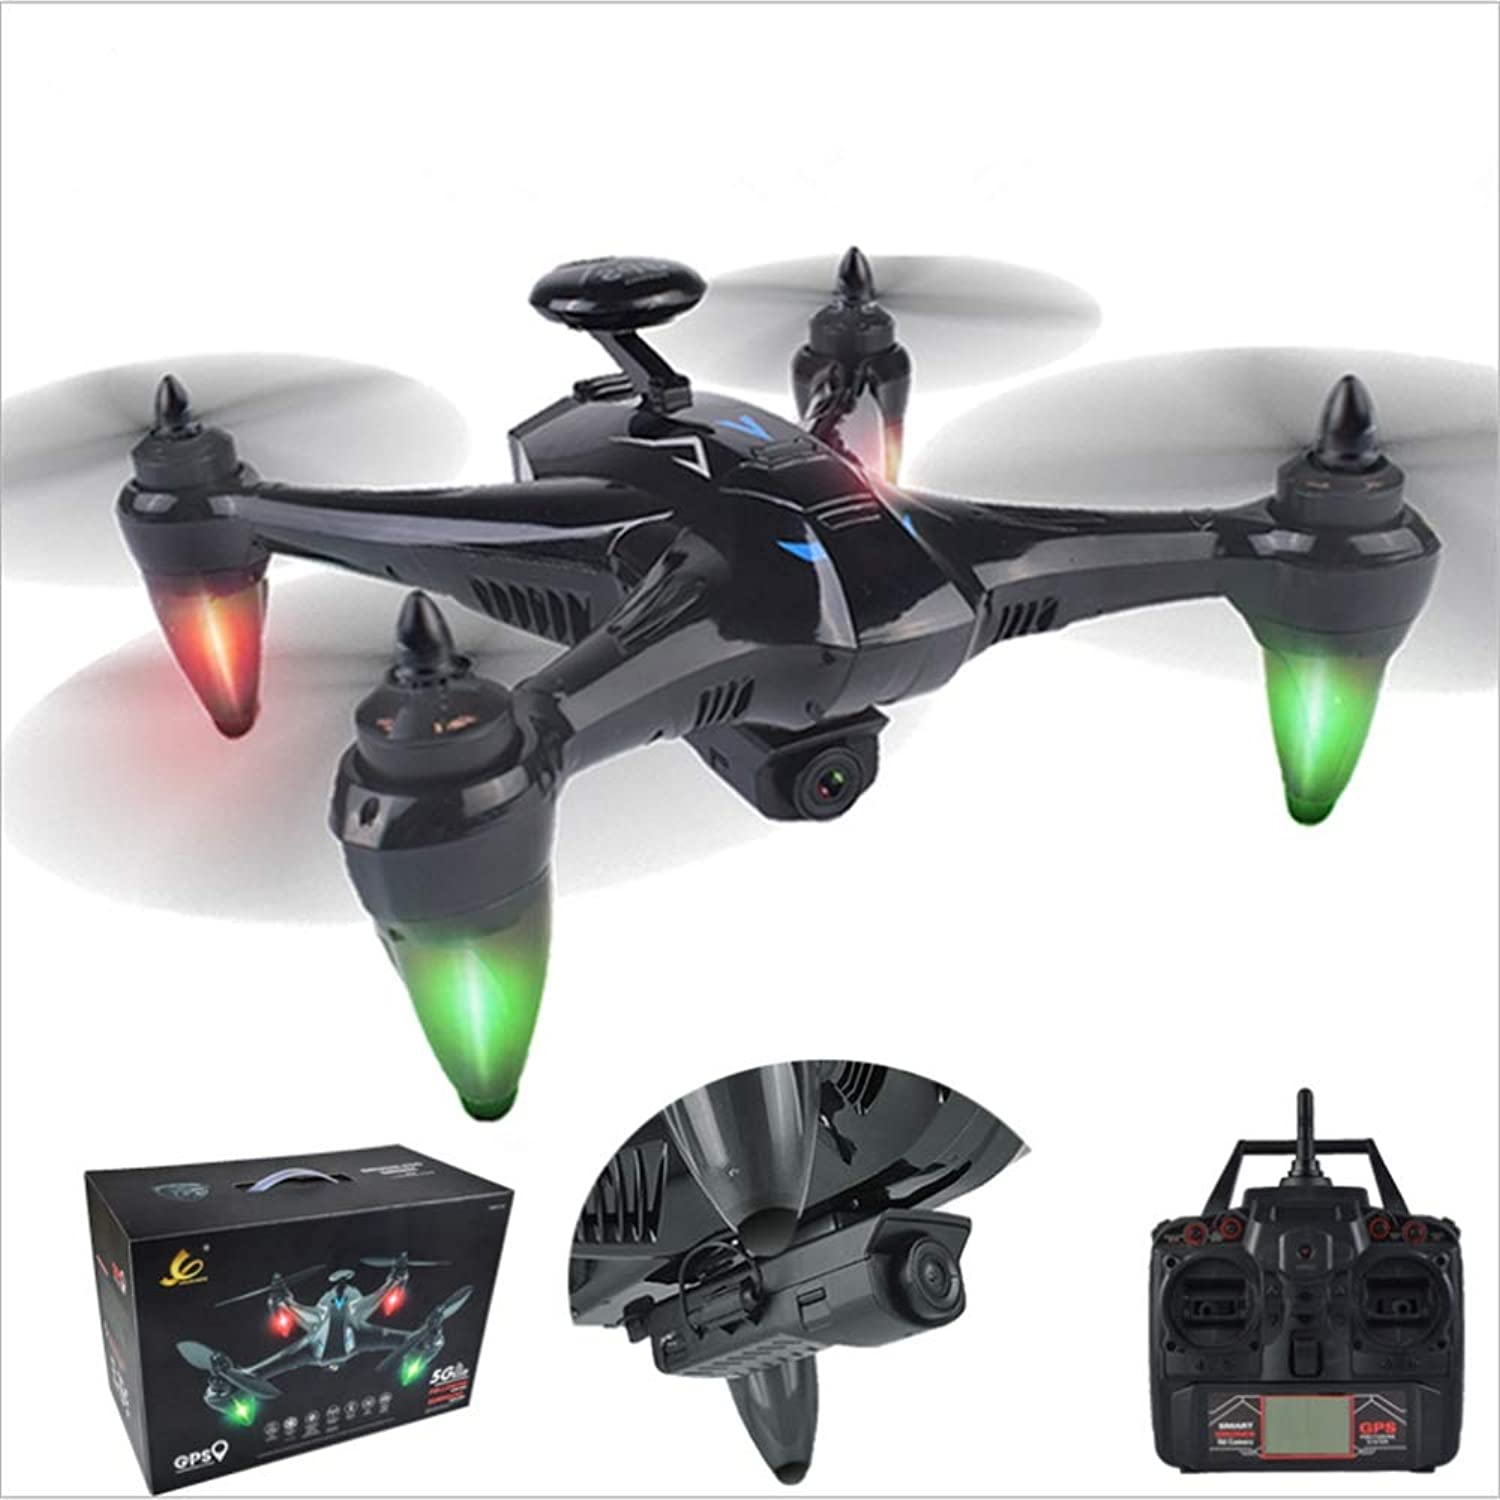 HXYL HXYL HXYL Drone With Camera For Adults, Aerial Camera Captain Camera Aerial Photography, Follow Surround Remote Control Aircraft 4bf49b